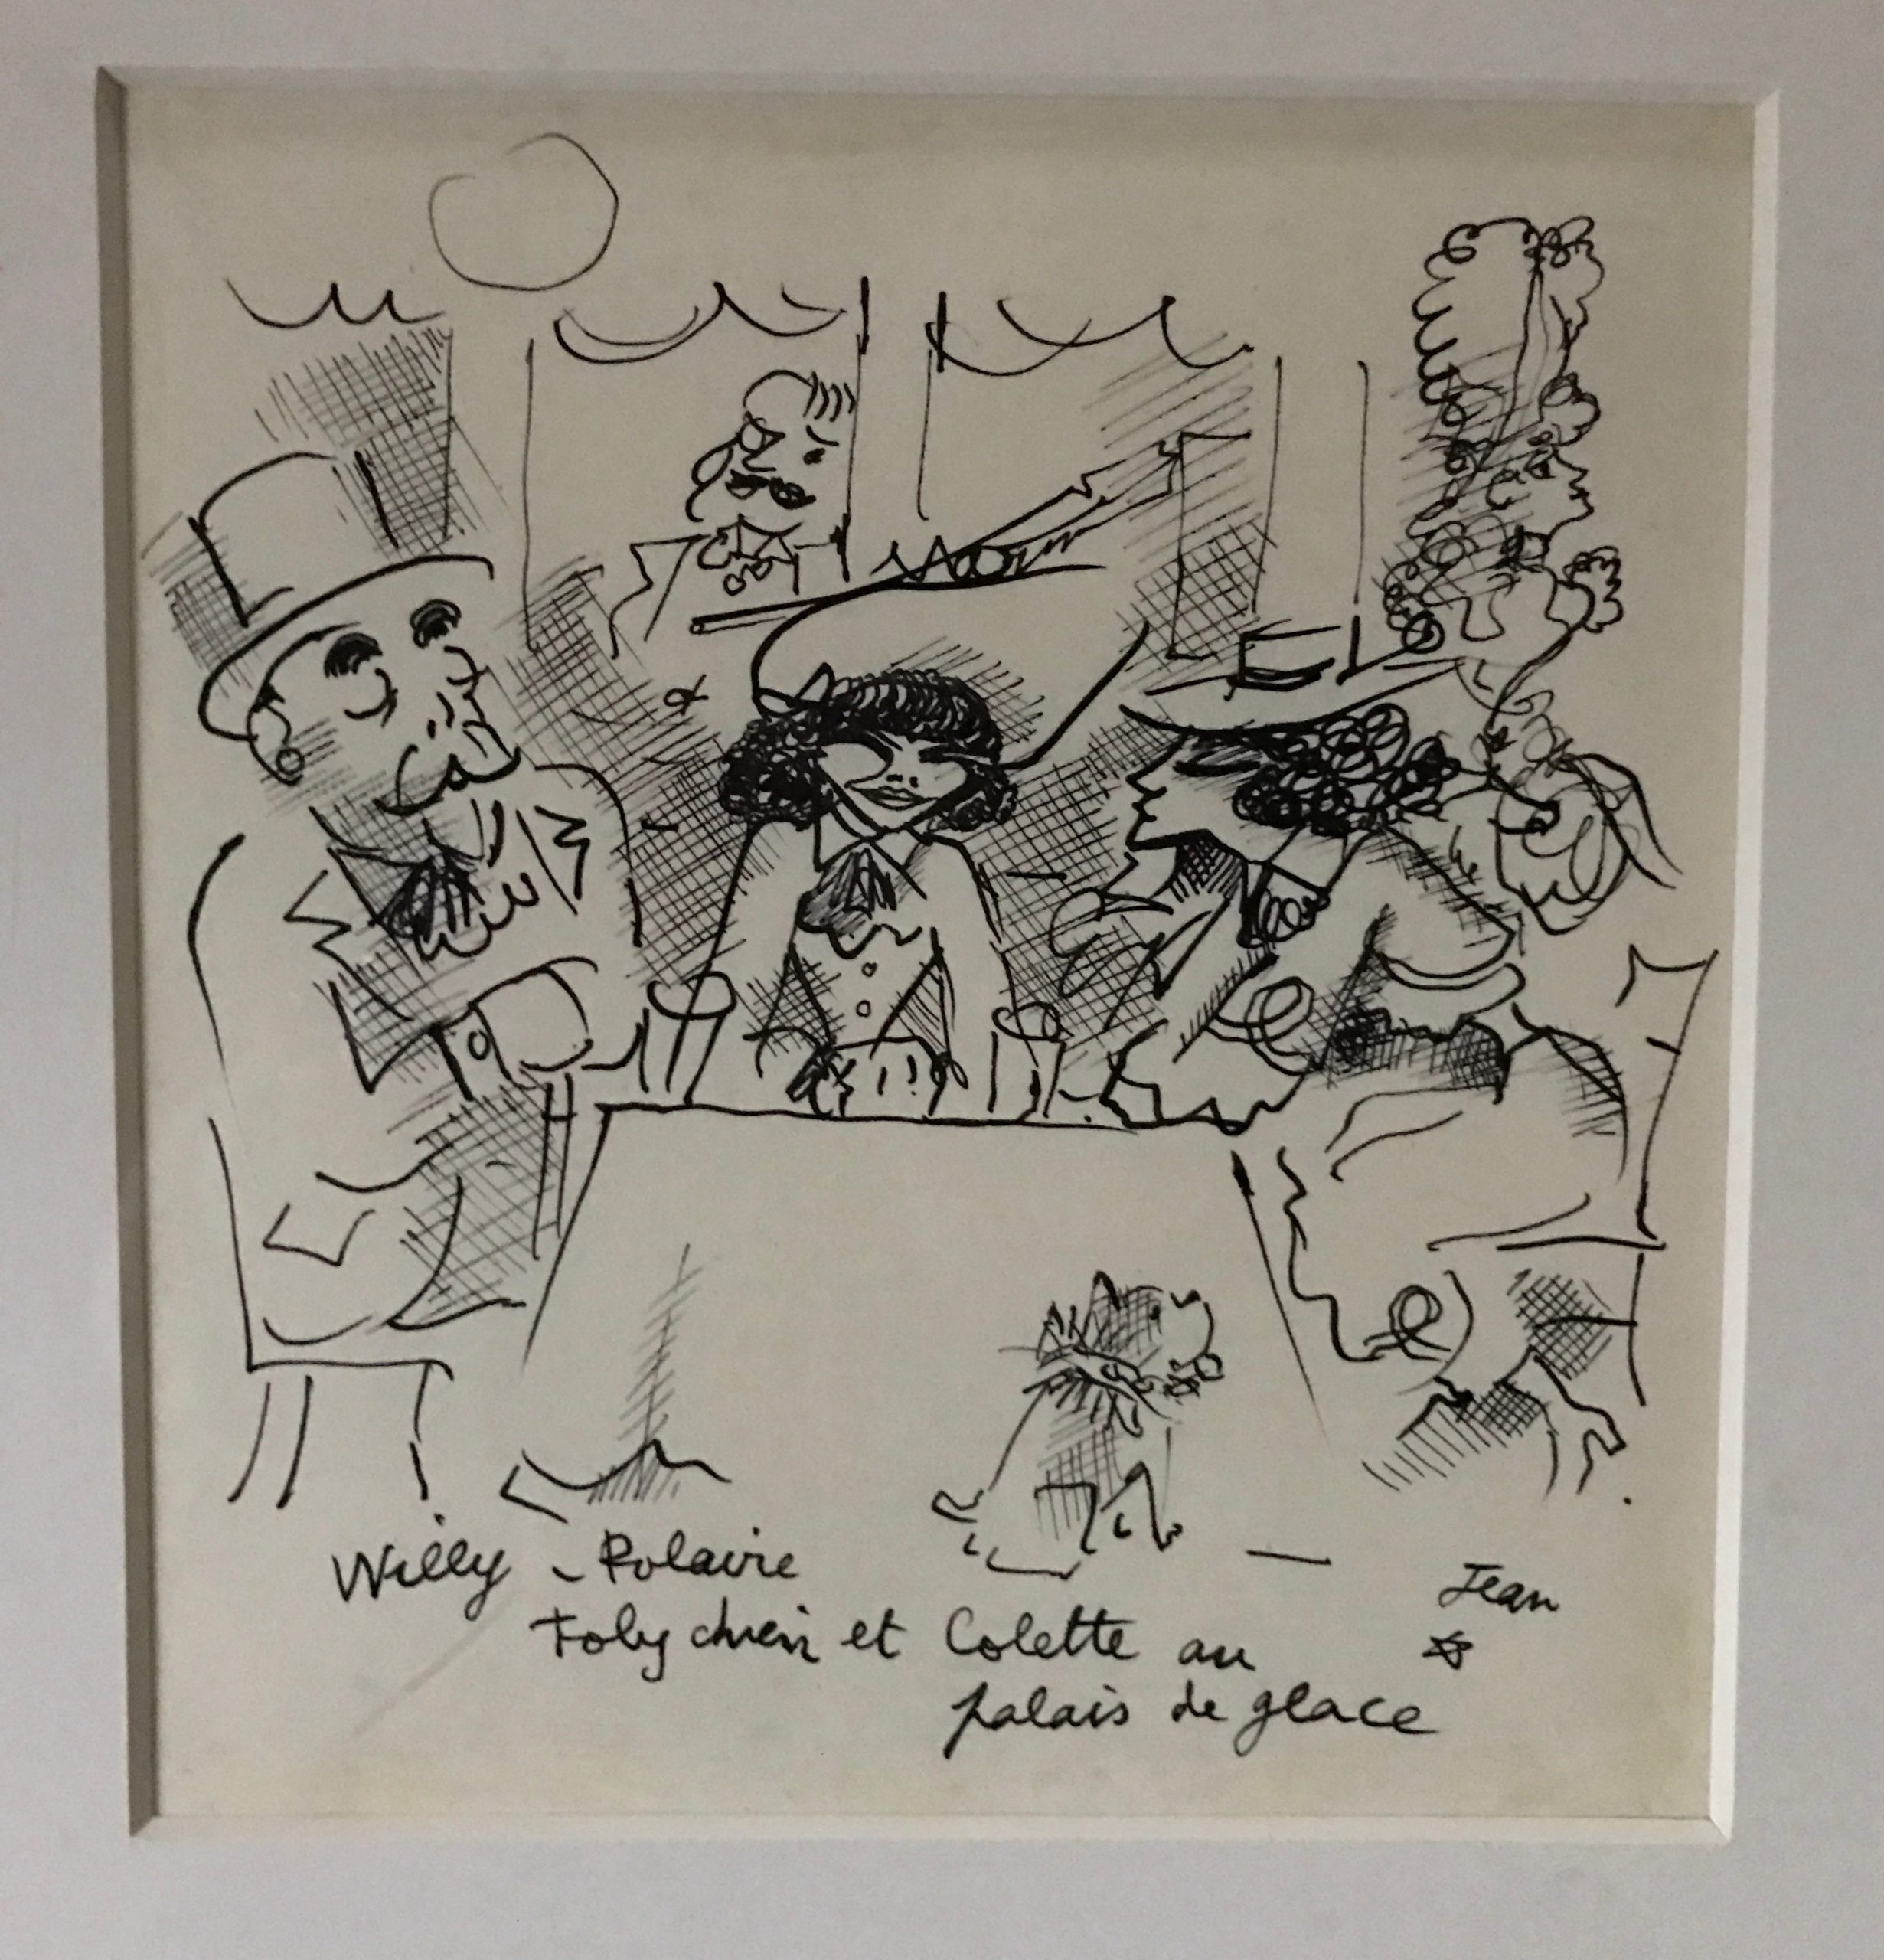 Willy, Polaire, Toby Chien et Colette au Palace de Glace by Jean Cocteau